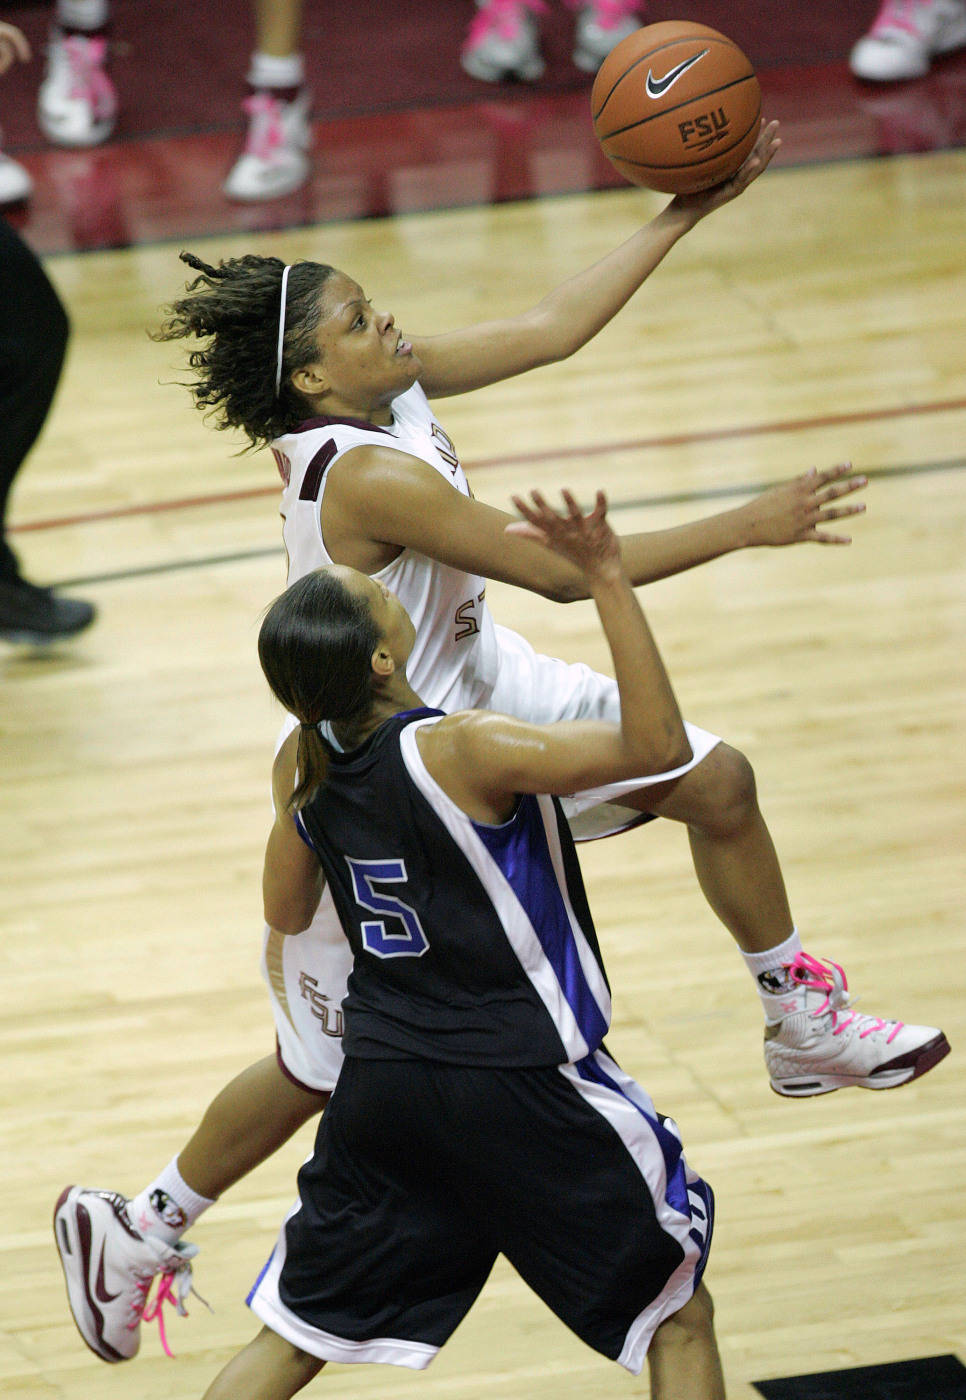 Florida State's Courtney Ward, top, drives past Duke's Jasmine Thomas for two second-half points during an NCAA college basketball game, Thursday, Jan. 29, 2009, in Tallahassee, Fla. Florida State won in overtime 82-75. (AP Photo/Phil Coale)